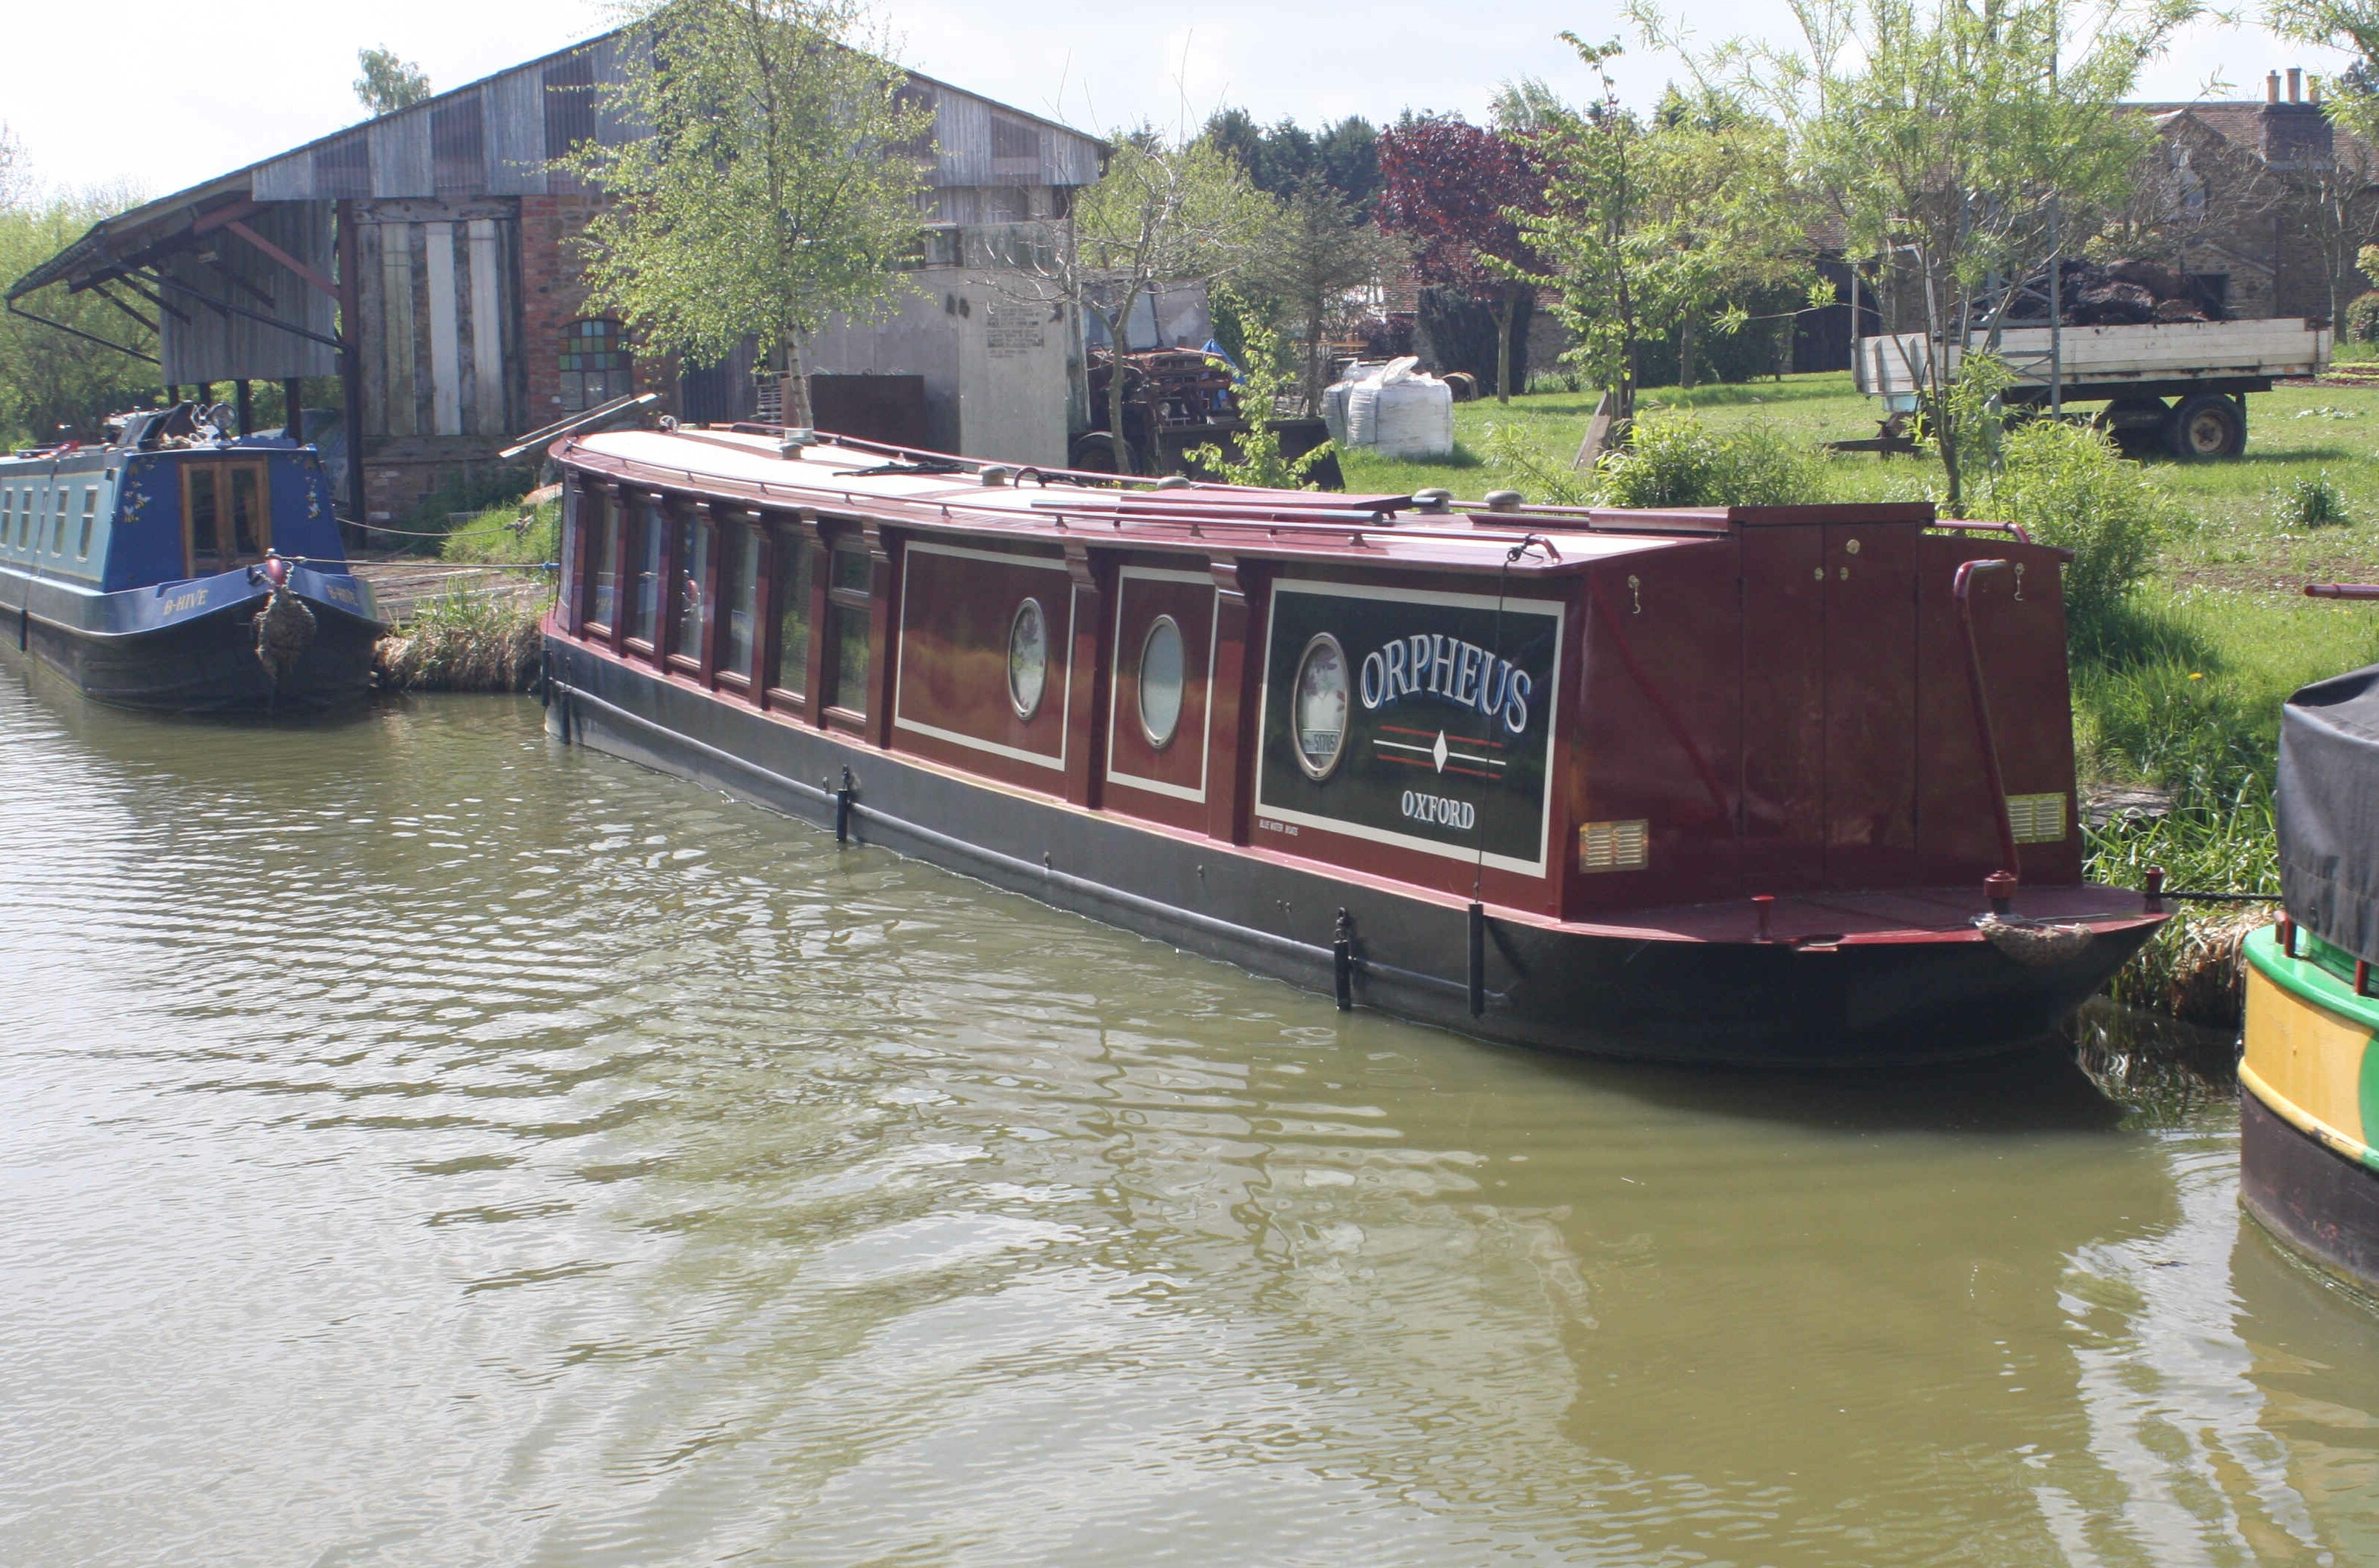 Unusual narrowboat design - built by Bluewater, who we associate with a more conventional, but beautifully crafted, boat.